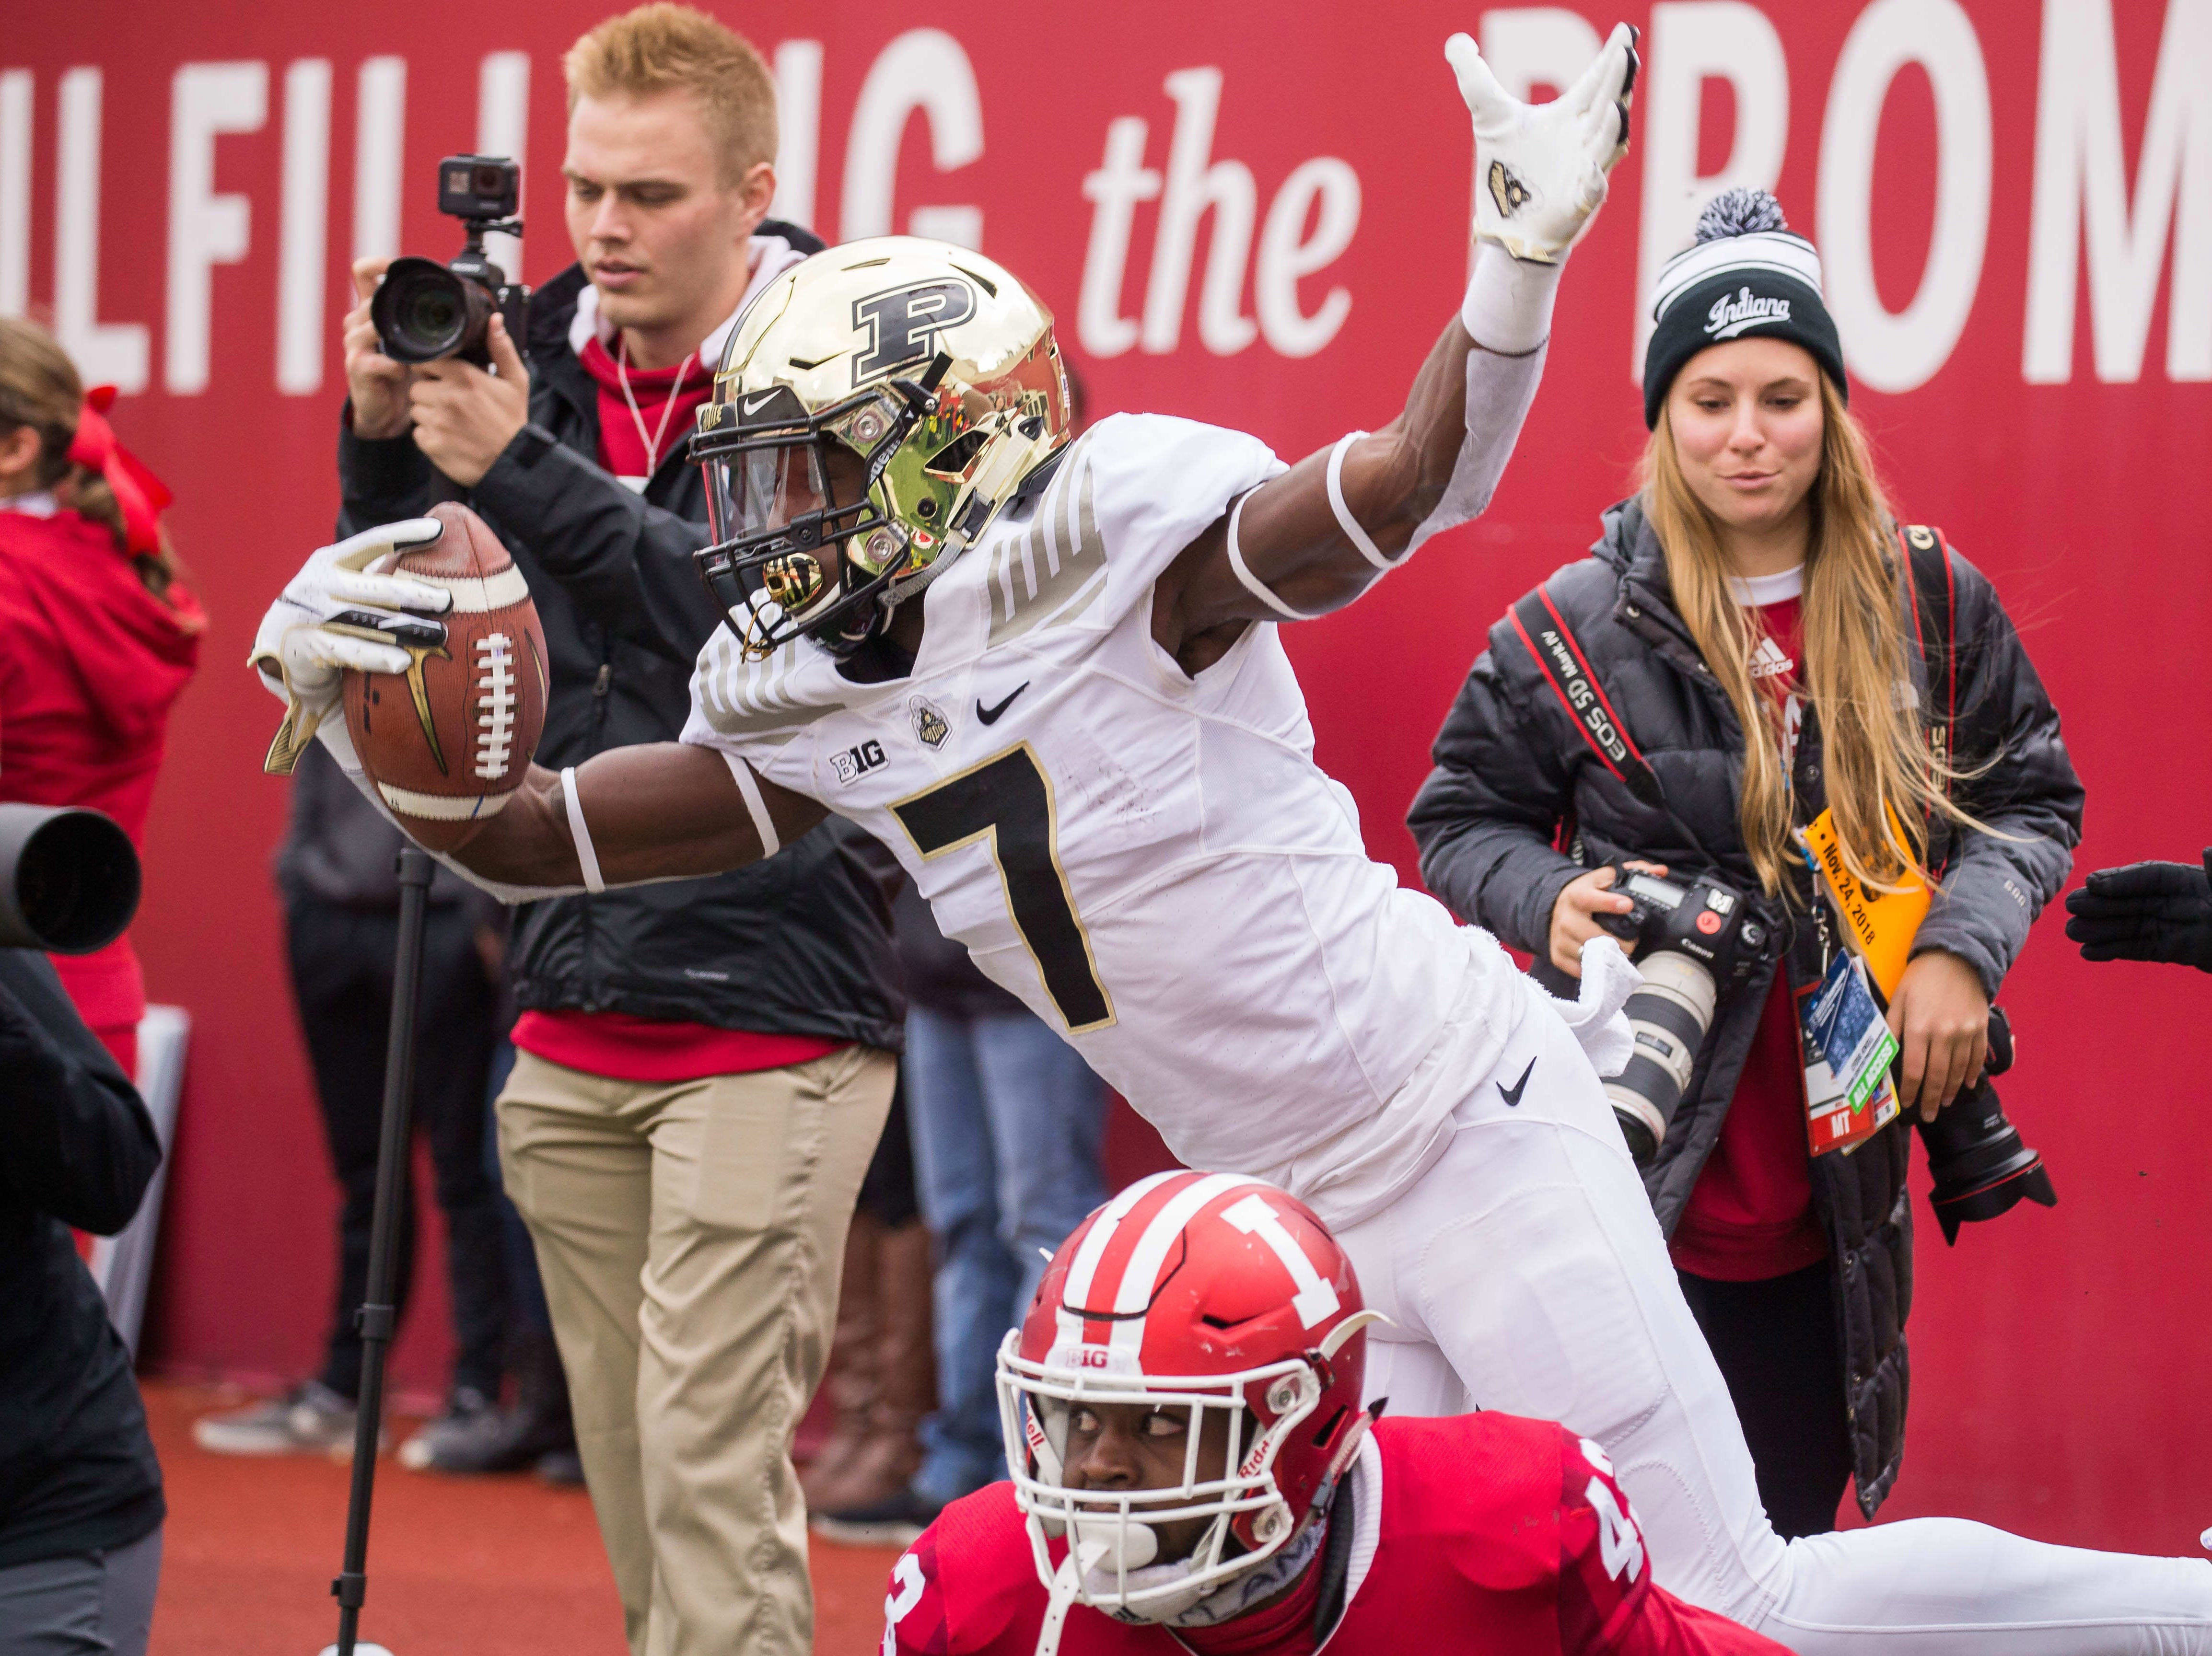 Purdue Boilermakers wide receiver Isaac Zico (7) celebrates after scoring a touchdown against Indiana Hoosiers linebacker Dameon Willis Jr. (43) in the first quarter at Memorial Stadium.